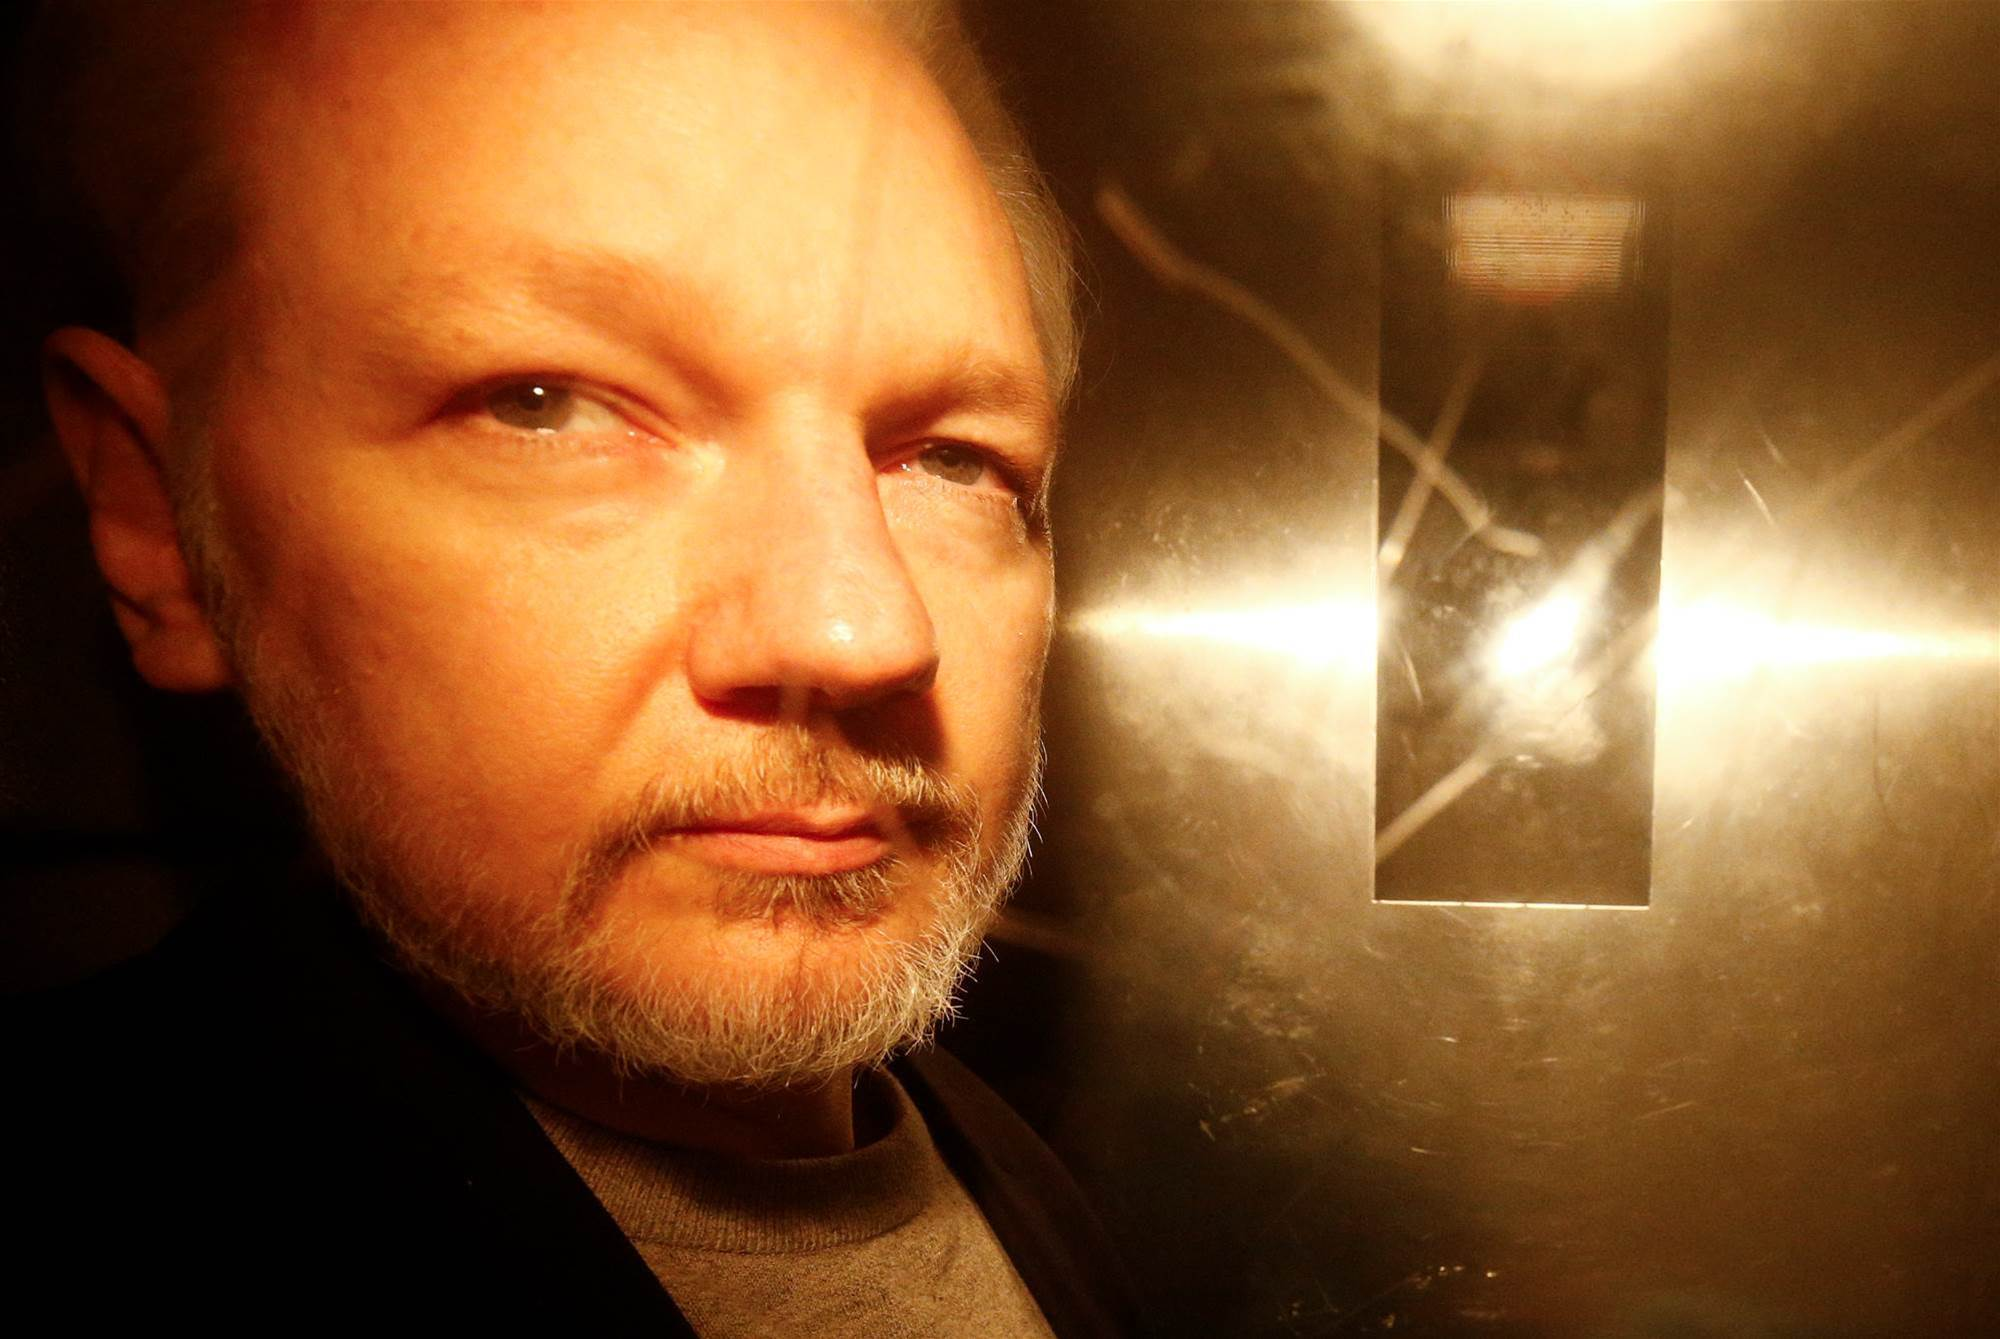 I've protected many, Assange tells UK court as he fights U.S. extradition warrant